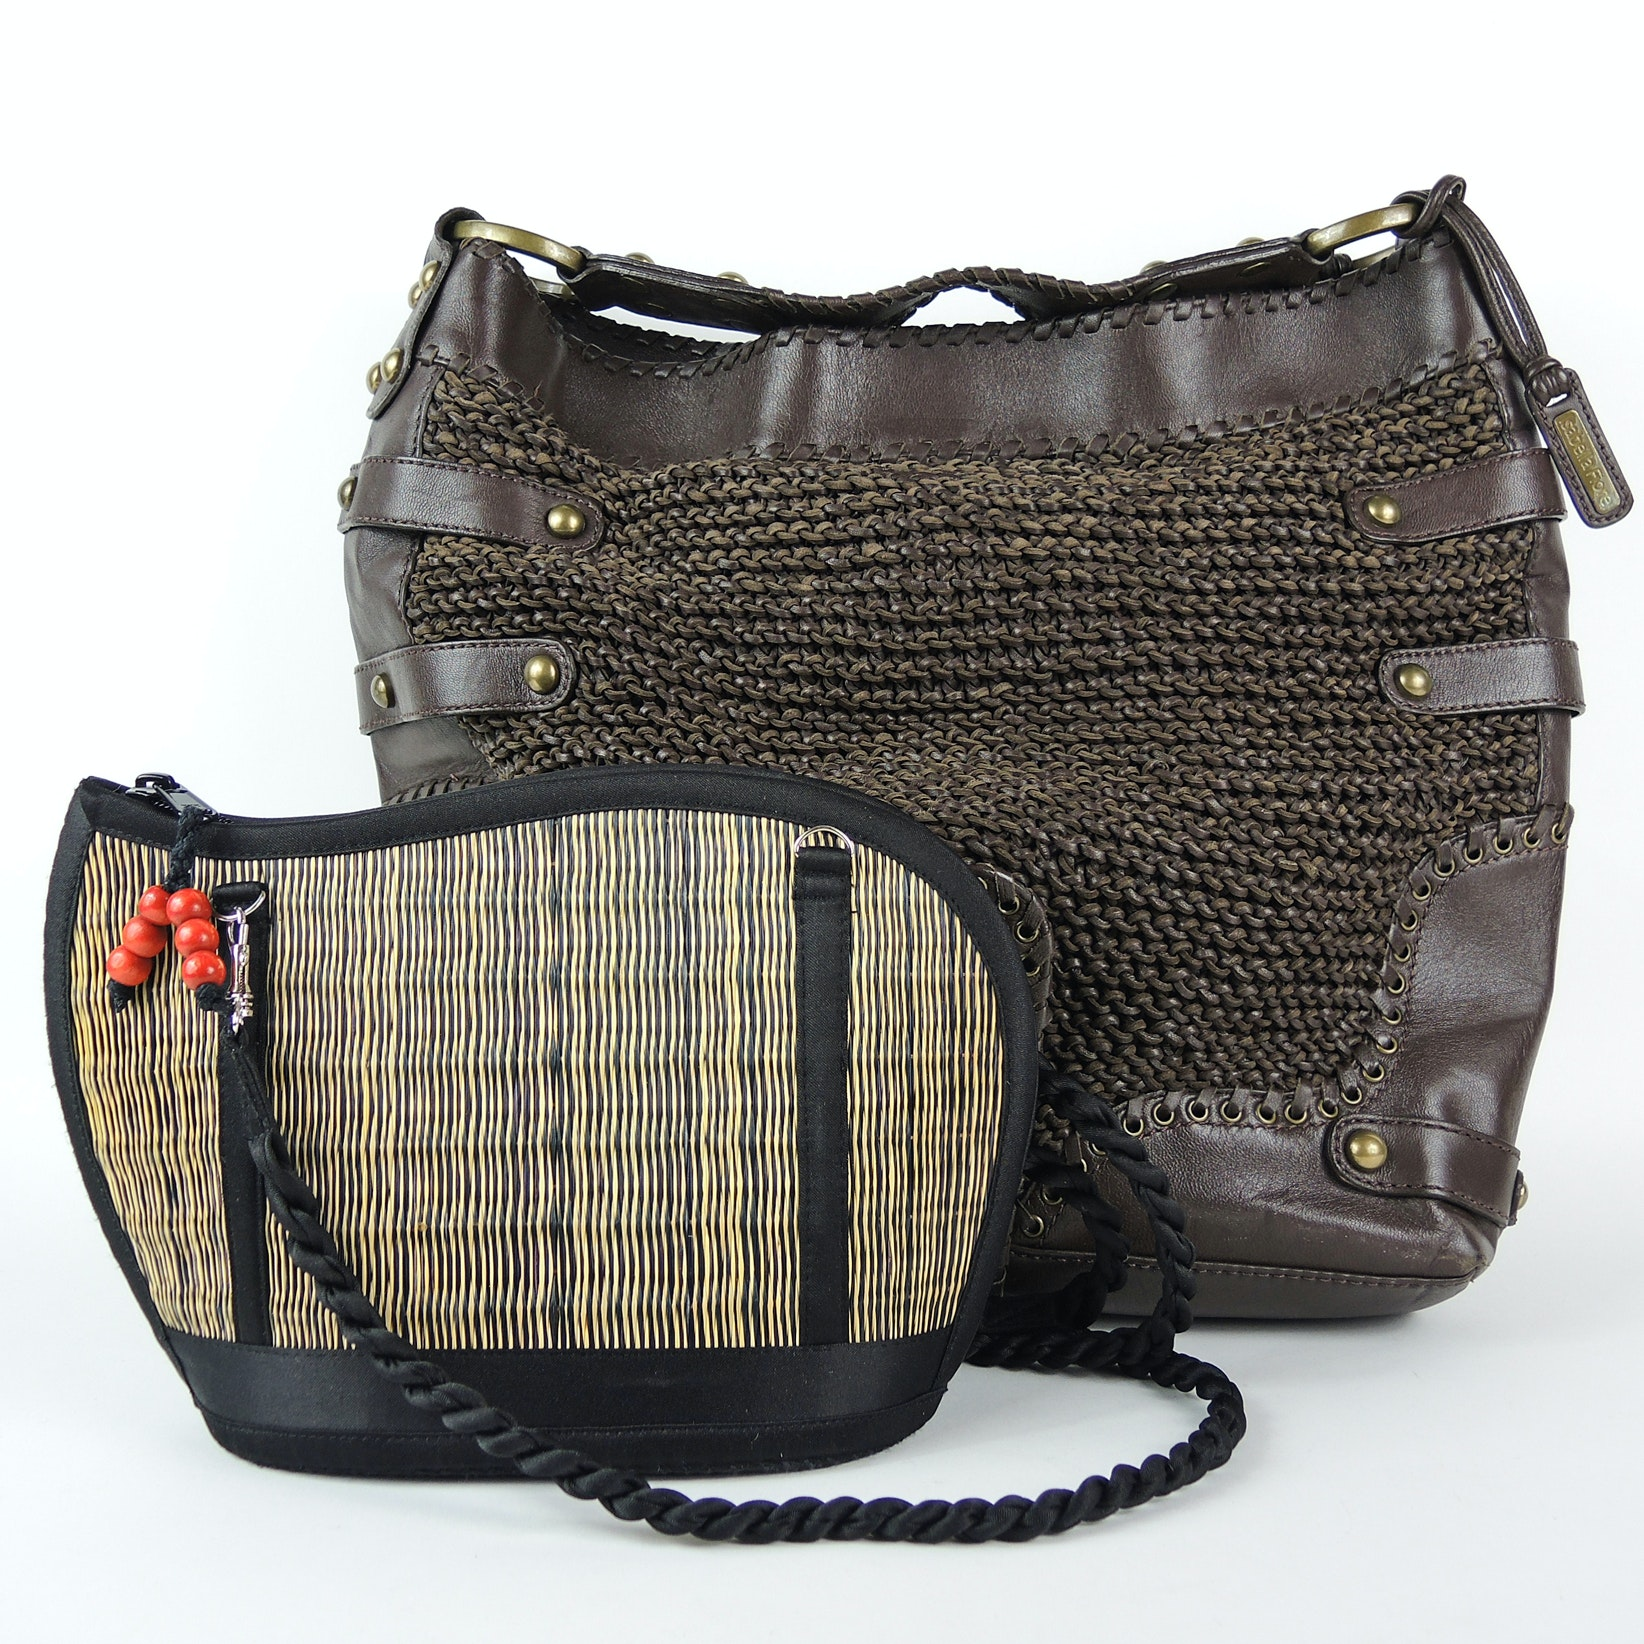 Isabella Fiore Woven Brown Leather Handbag and Baskets of Cambodia Handbag